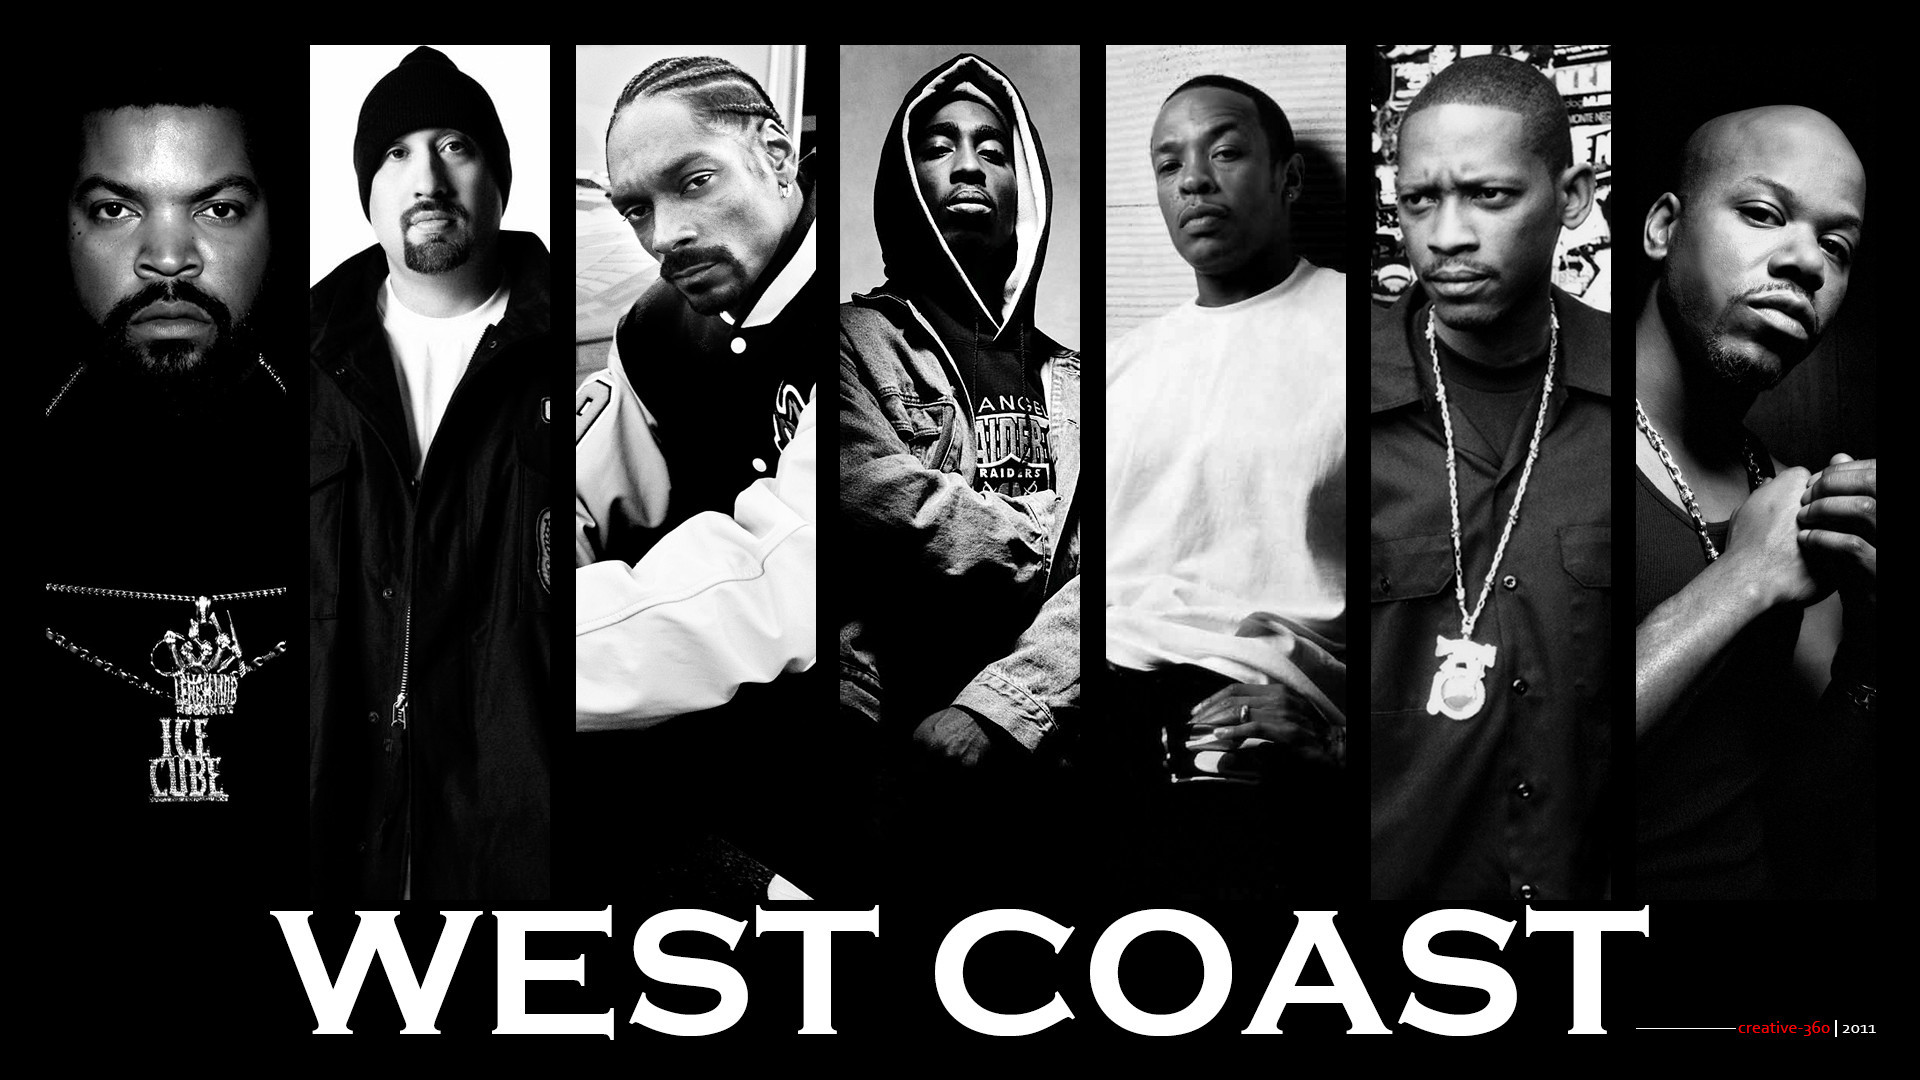 1920x1080  West Coast Gangsta Rap HD Wallpaper on MobDecor